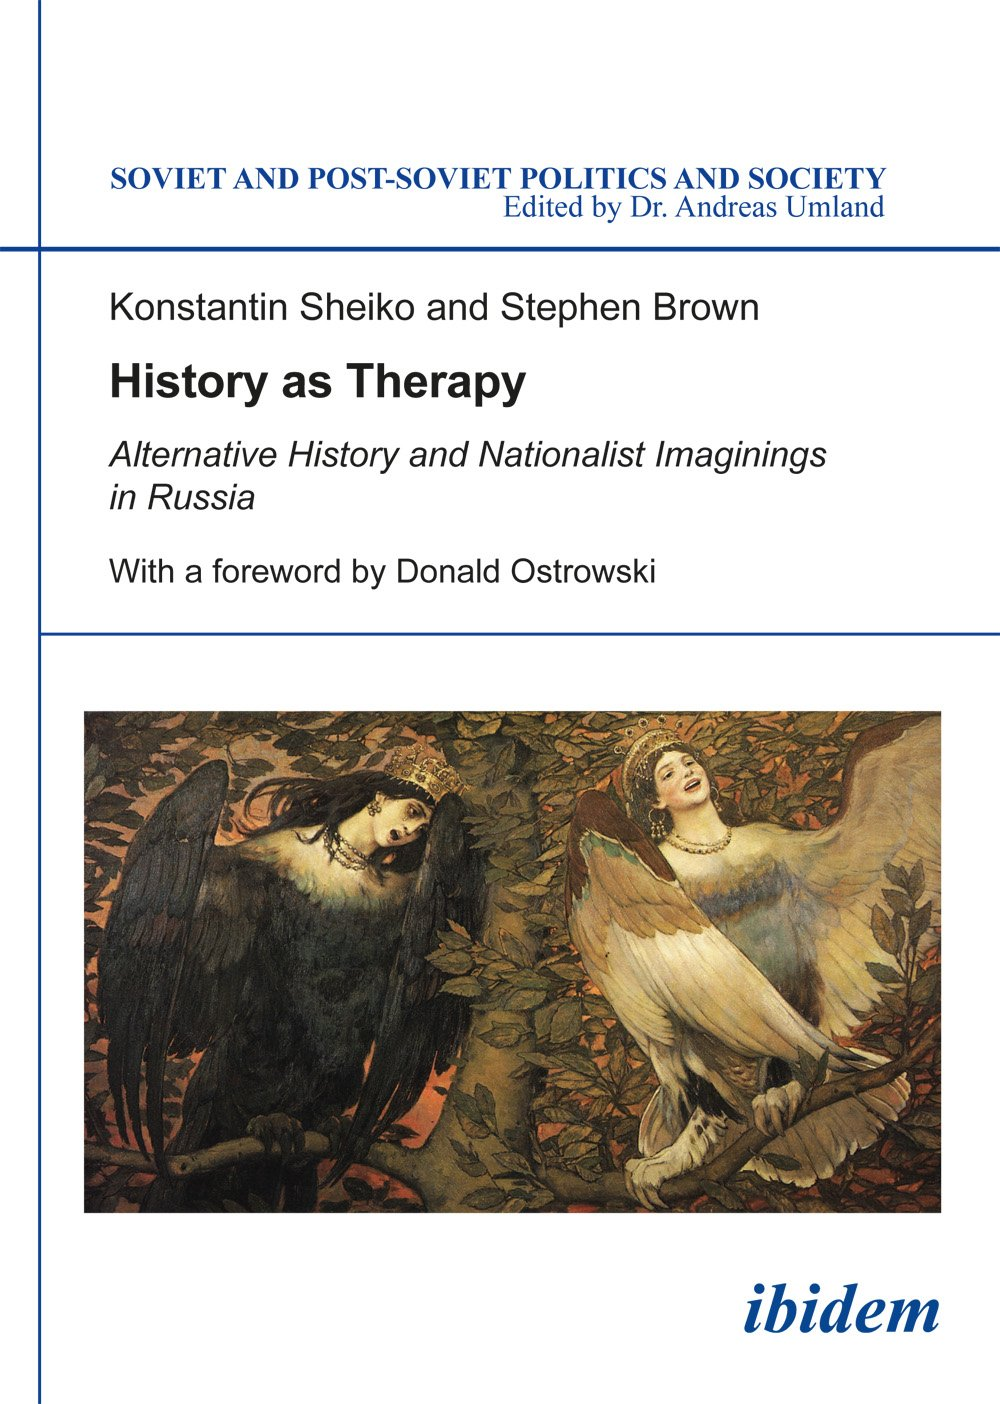 Read Online History as Therapy: Alternative History and Nationalist Imaginings in Russia (Soviet and Post-Soviet Politics and Society) pdf